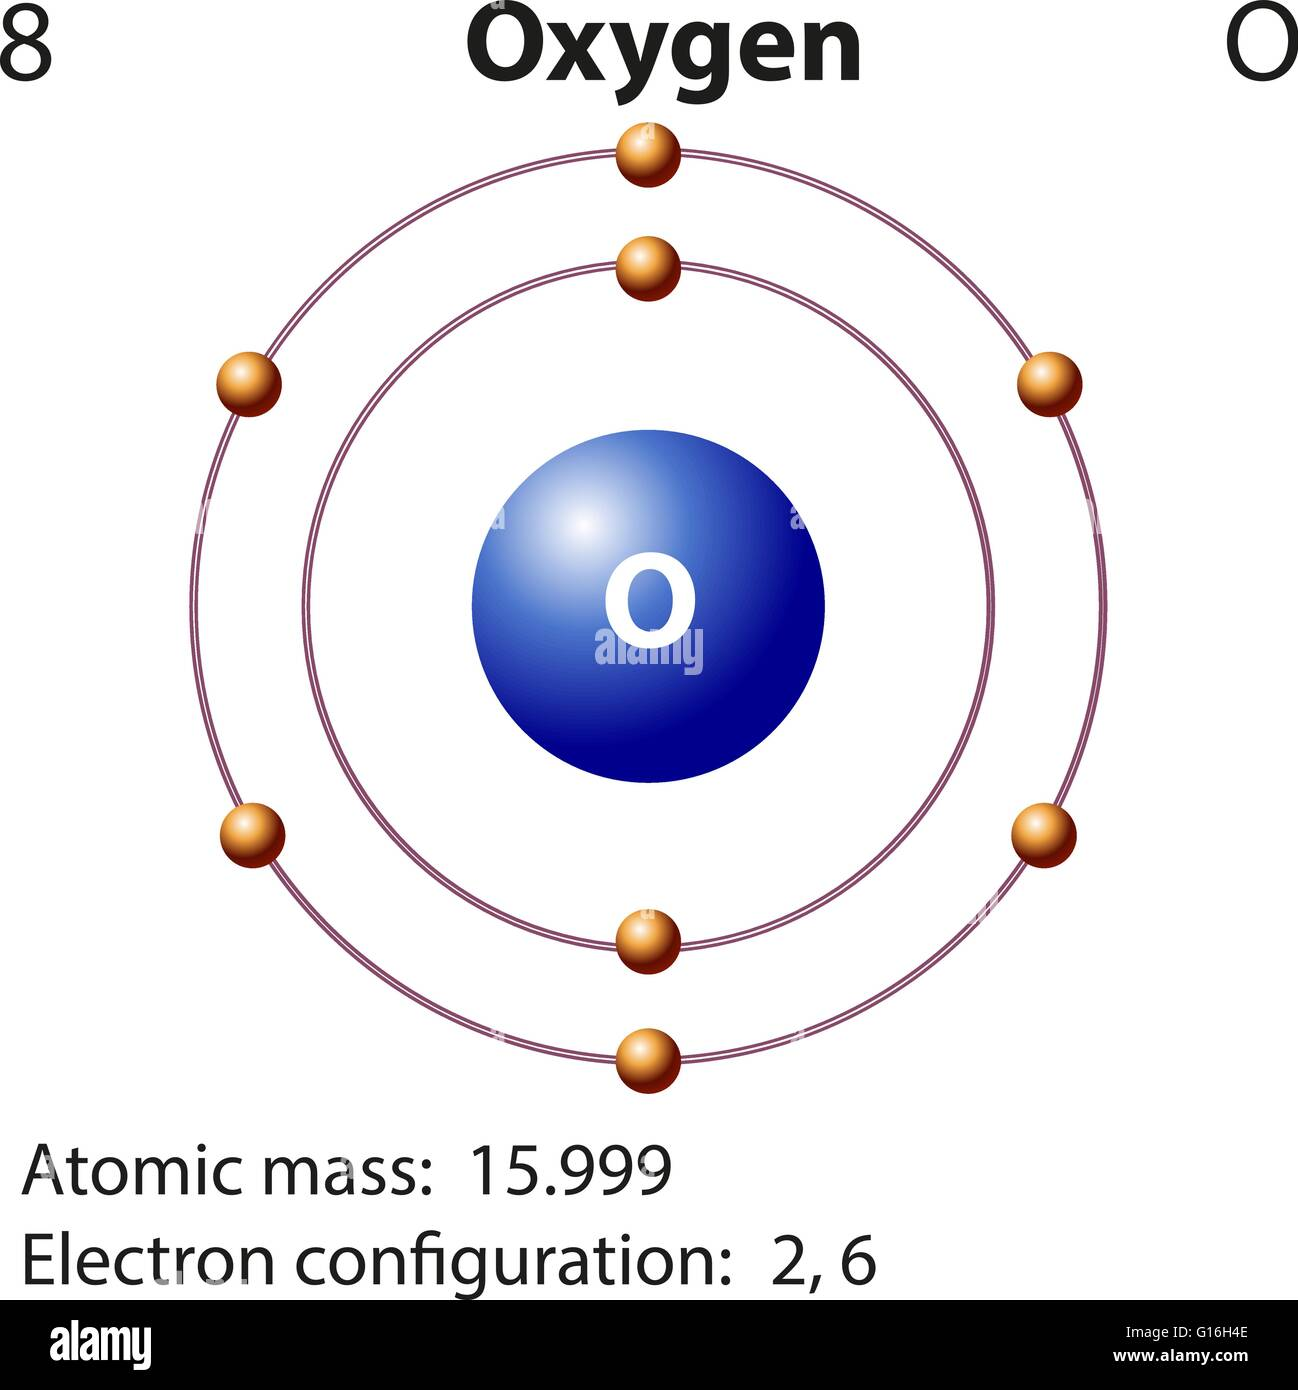 Diagram representation of the element oxygen illustration stock diagram representation of the element oxygen illustration pooptronica Image collections